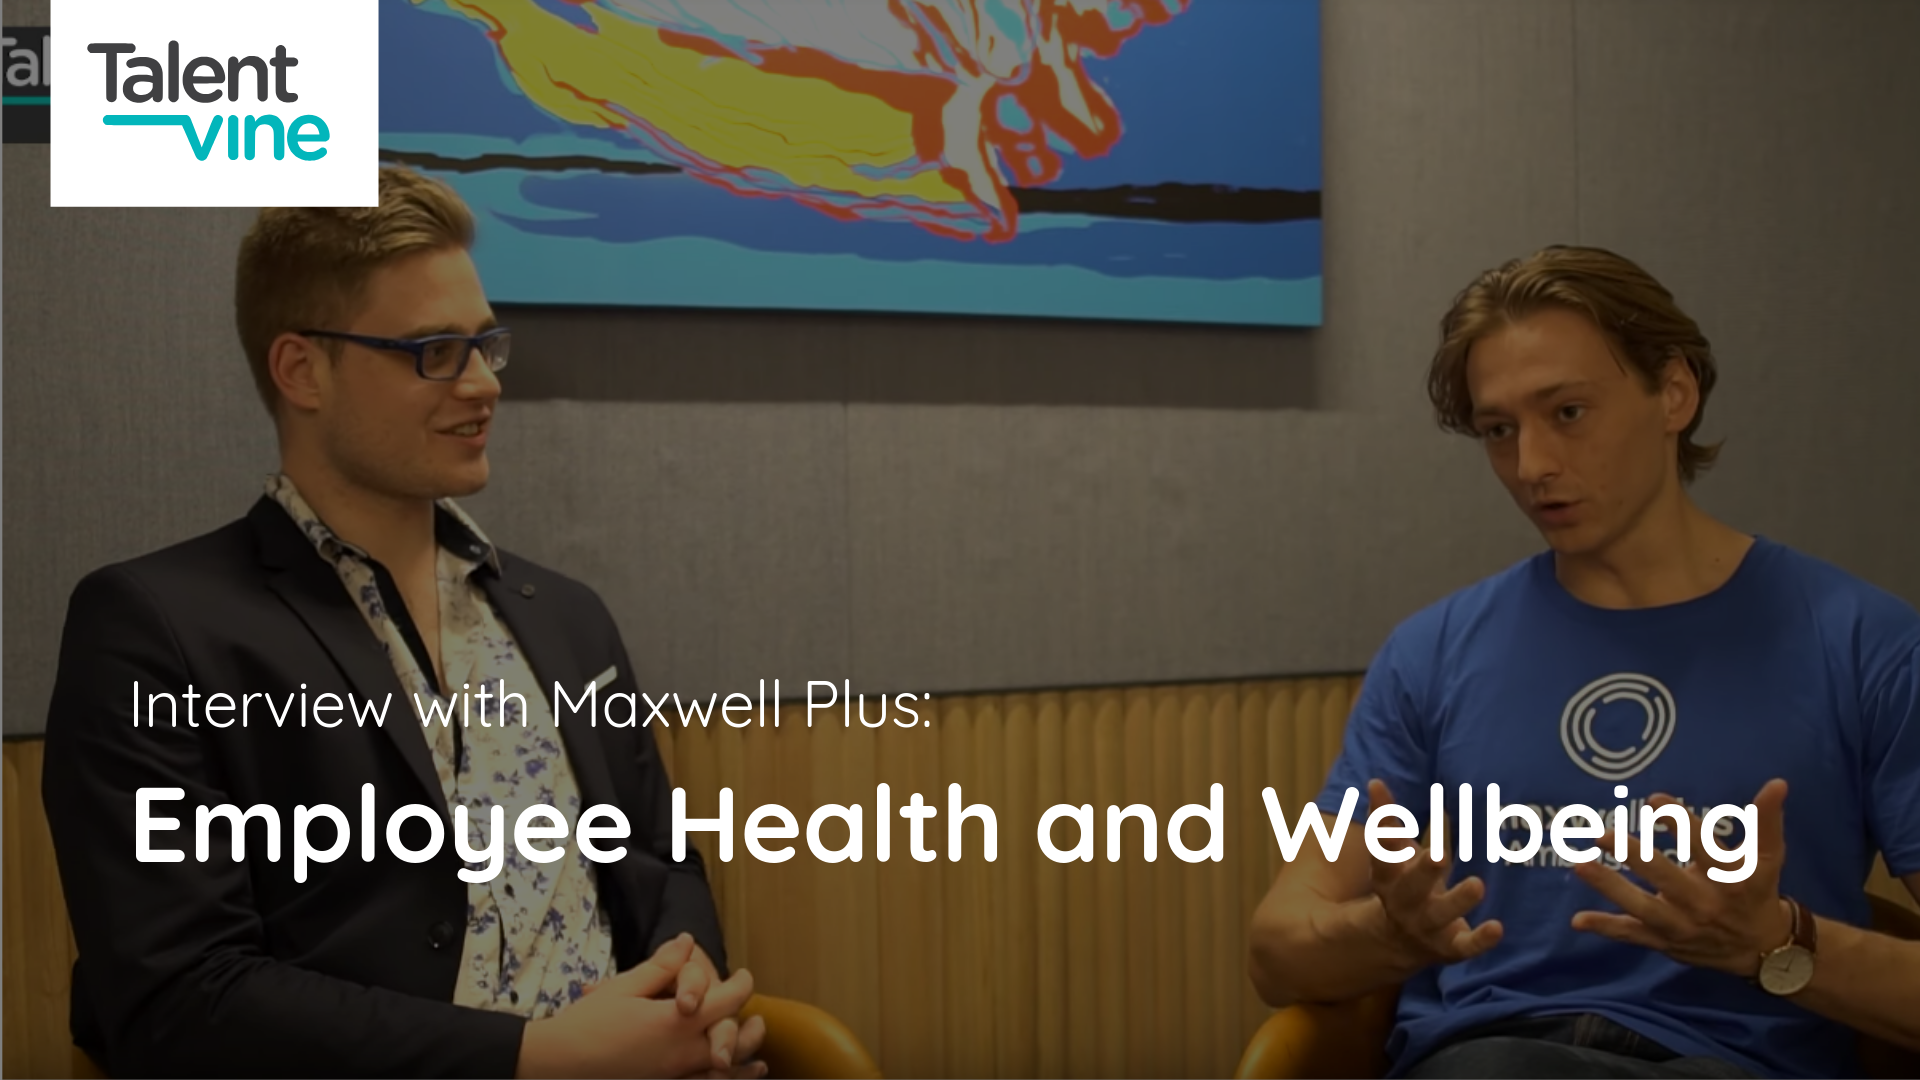 TalentVine Interview with Maxwell Plus - Employee Health and Wellbeing